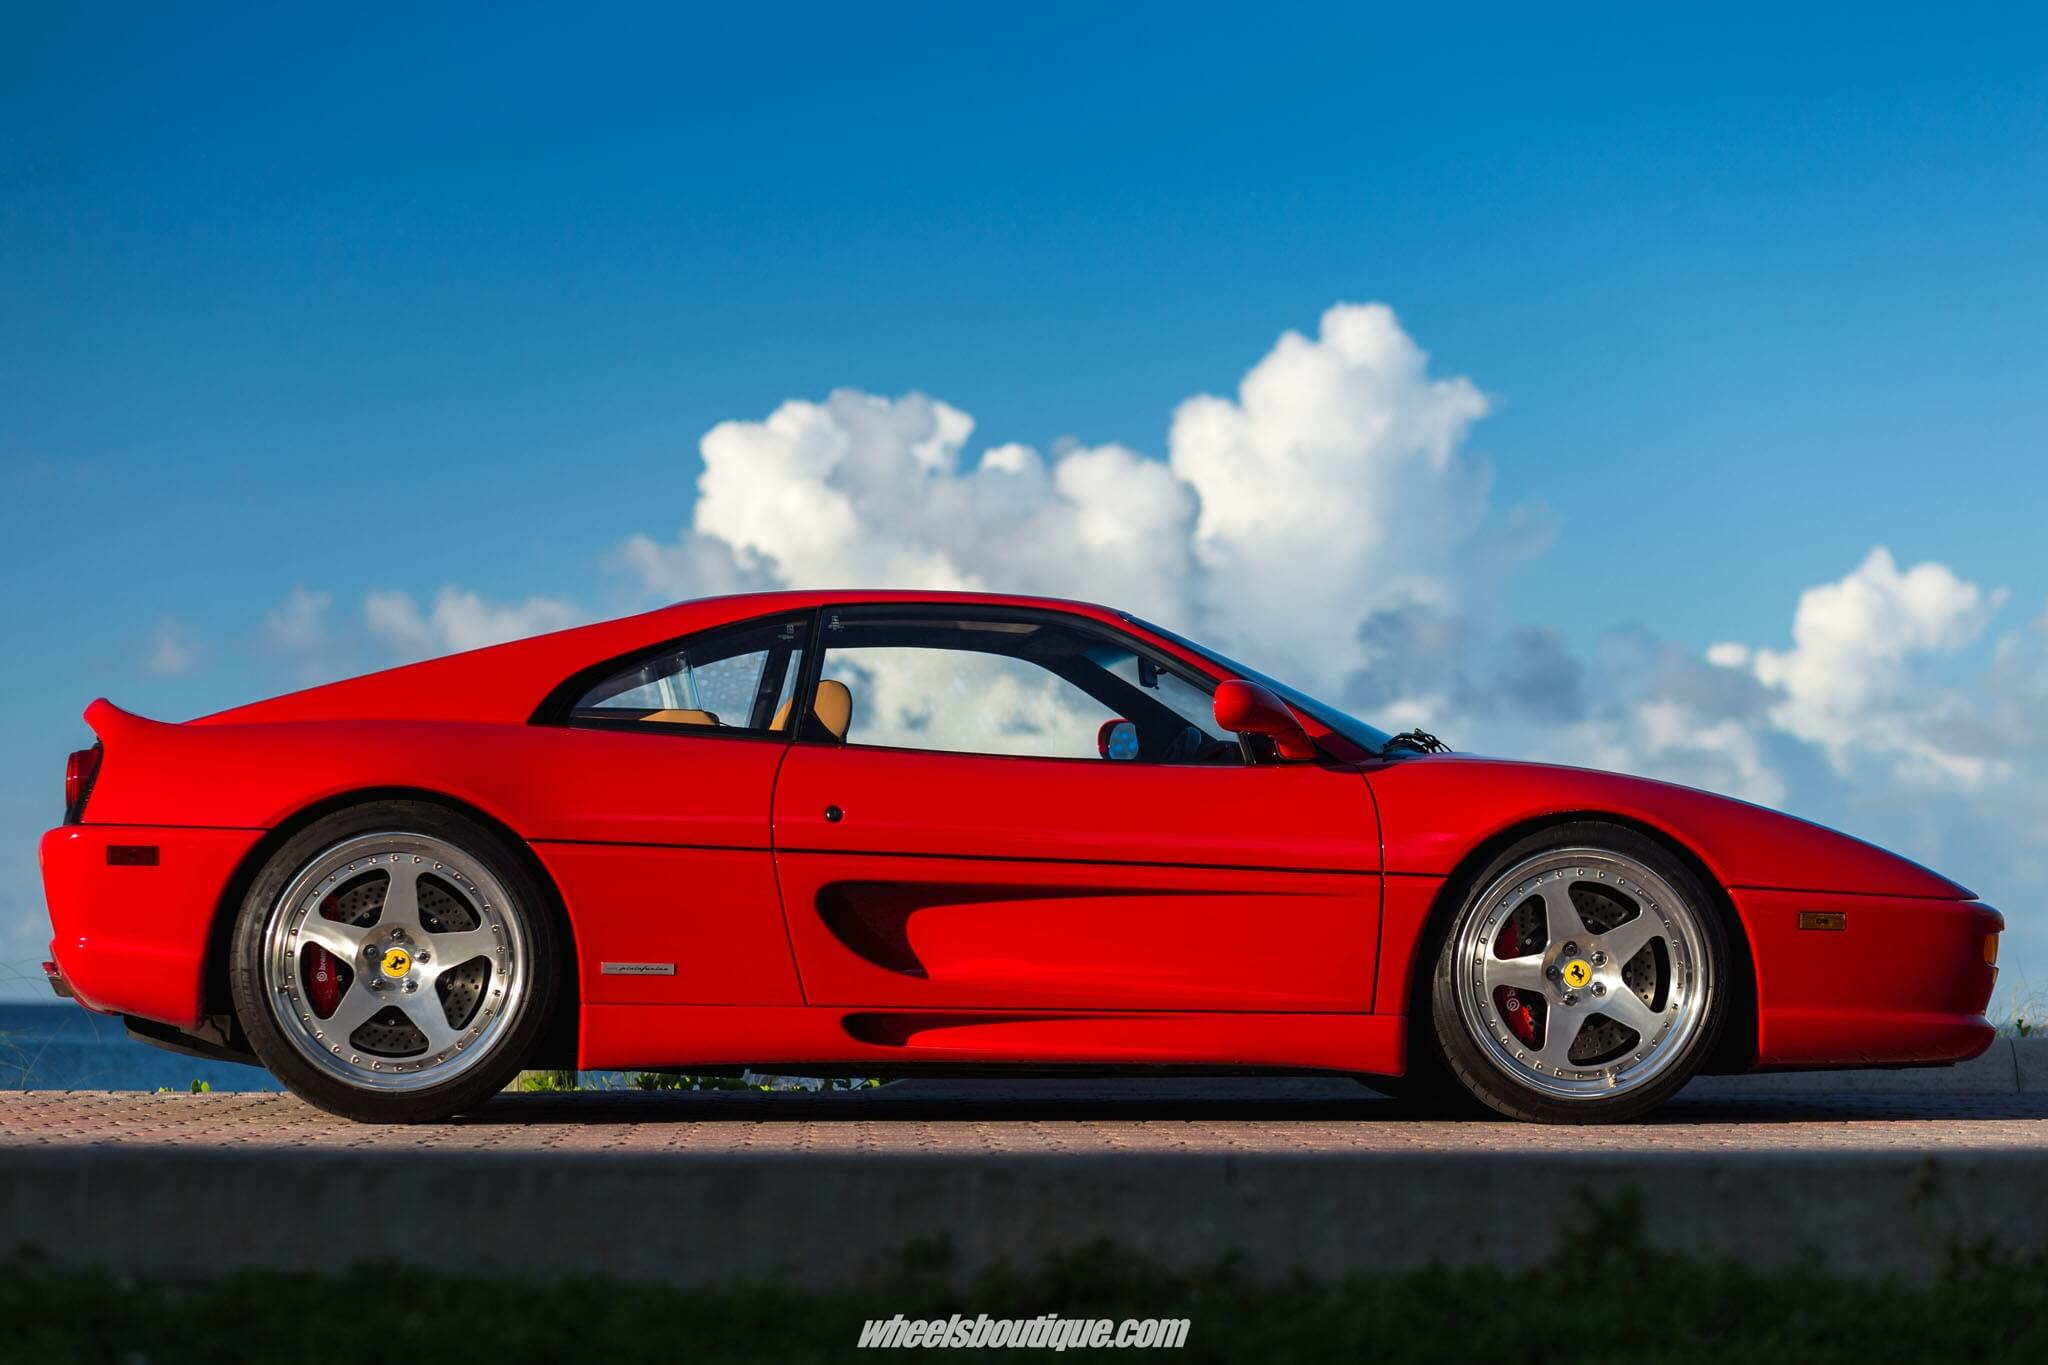 Ferrari F355 GTB with HRE Clic 305 in Brushed Clear | HRE ...